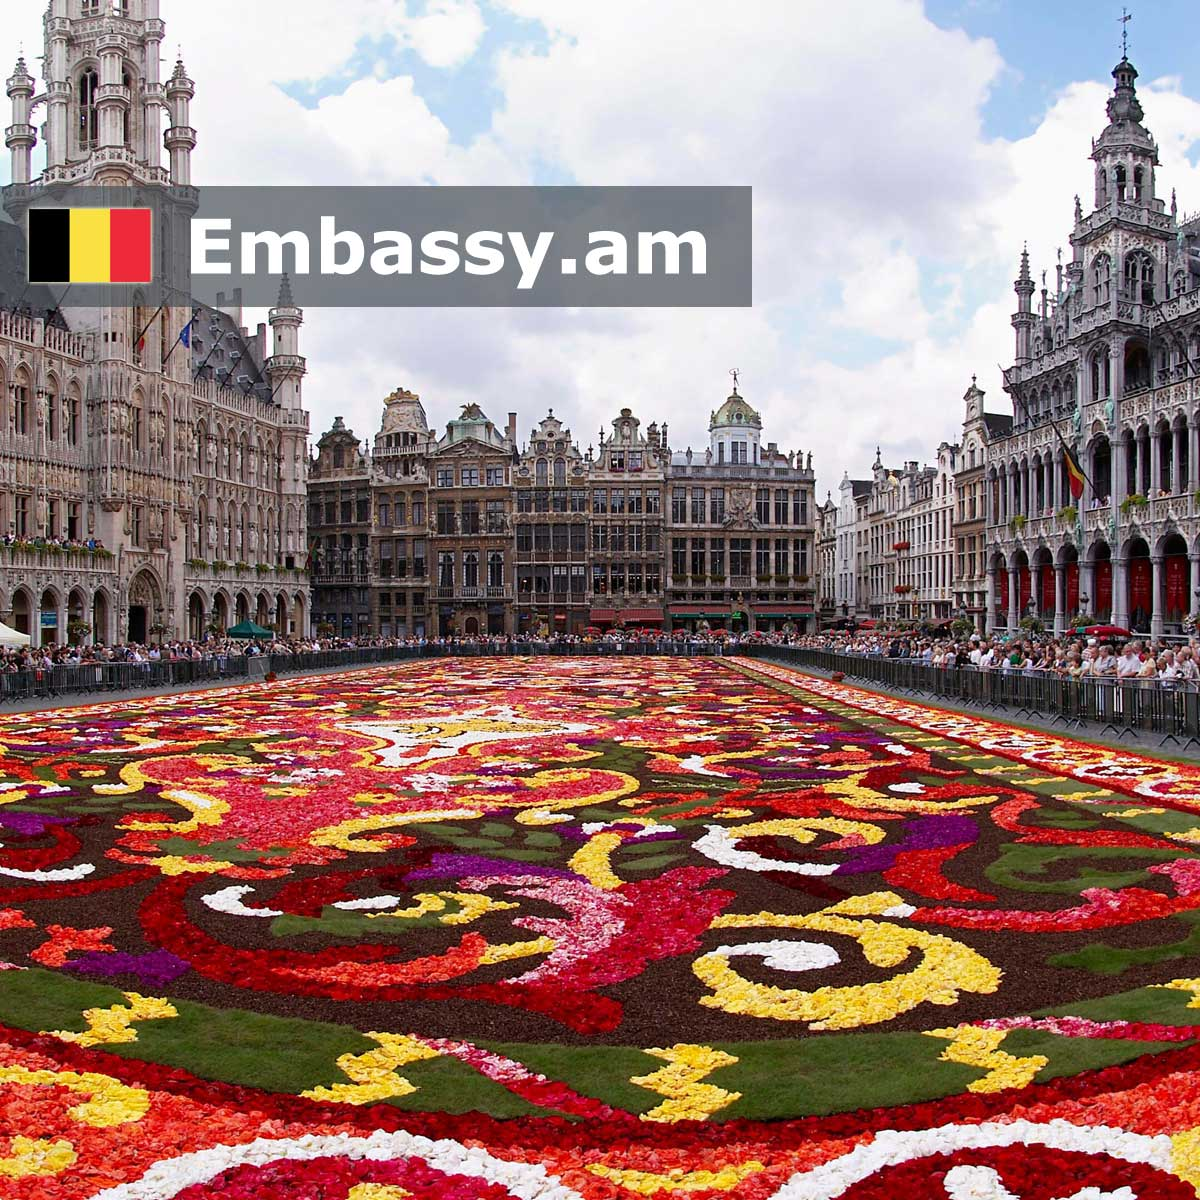 Brussels - Hotels in Belgium - Embassy.am